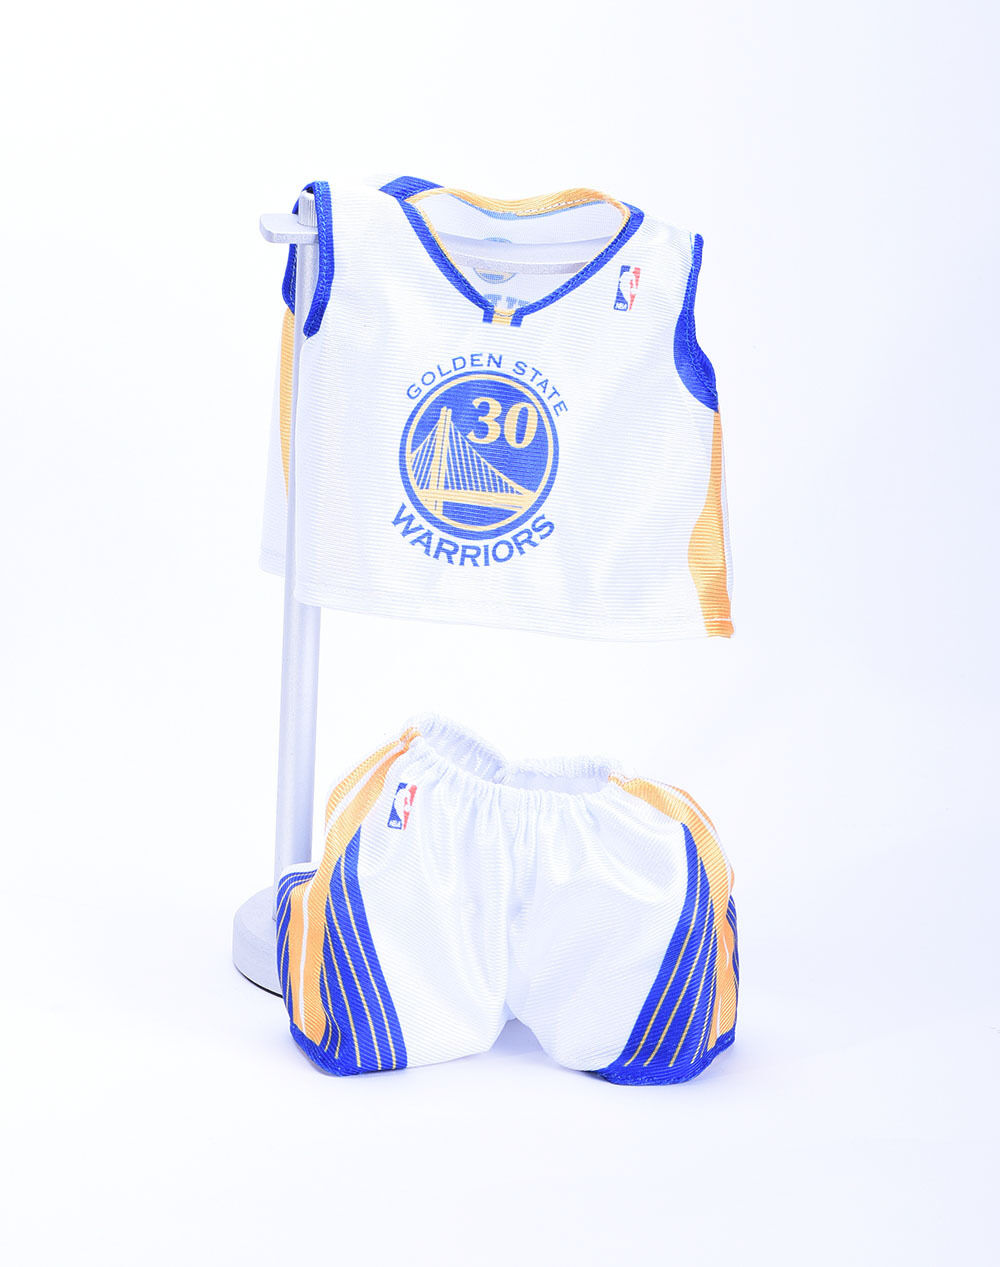 new products 2ba15 3bbad Details about NBA Gift Teddy Bear w/Golden State Warriors #30 Stephen Curry  Home Jersey & Pant